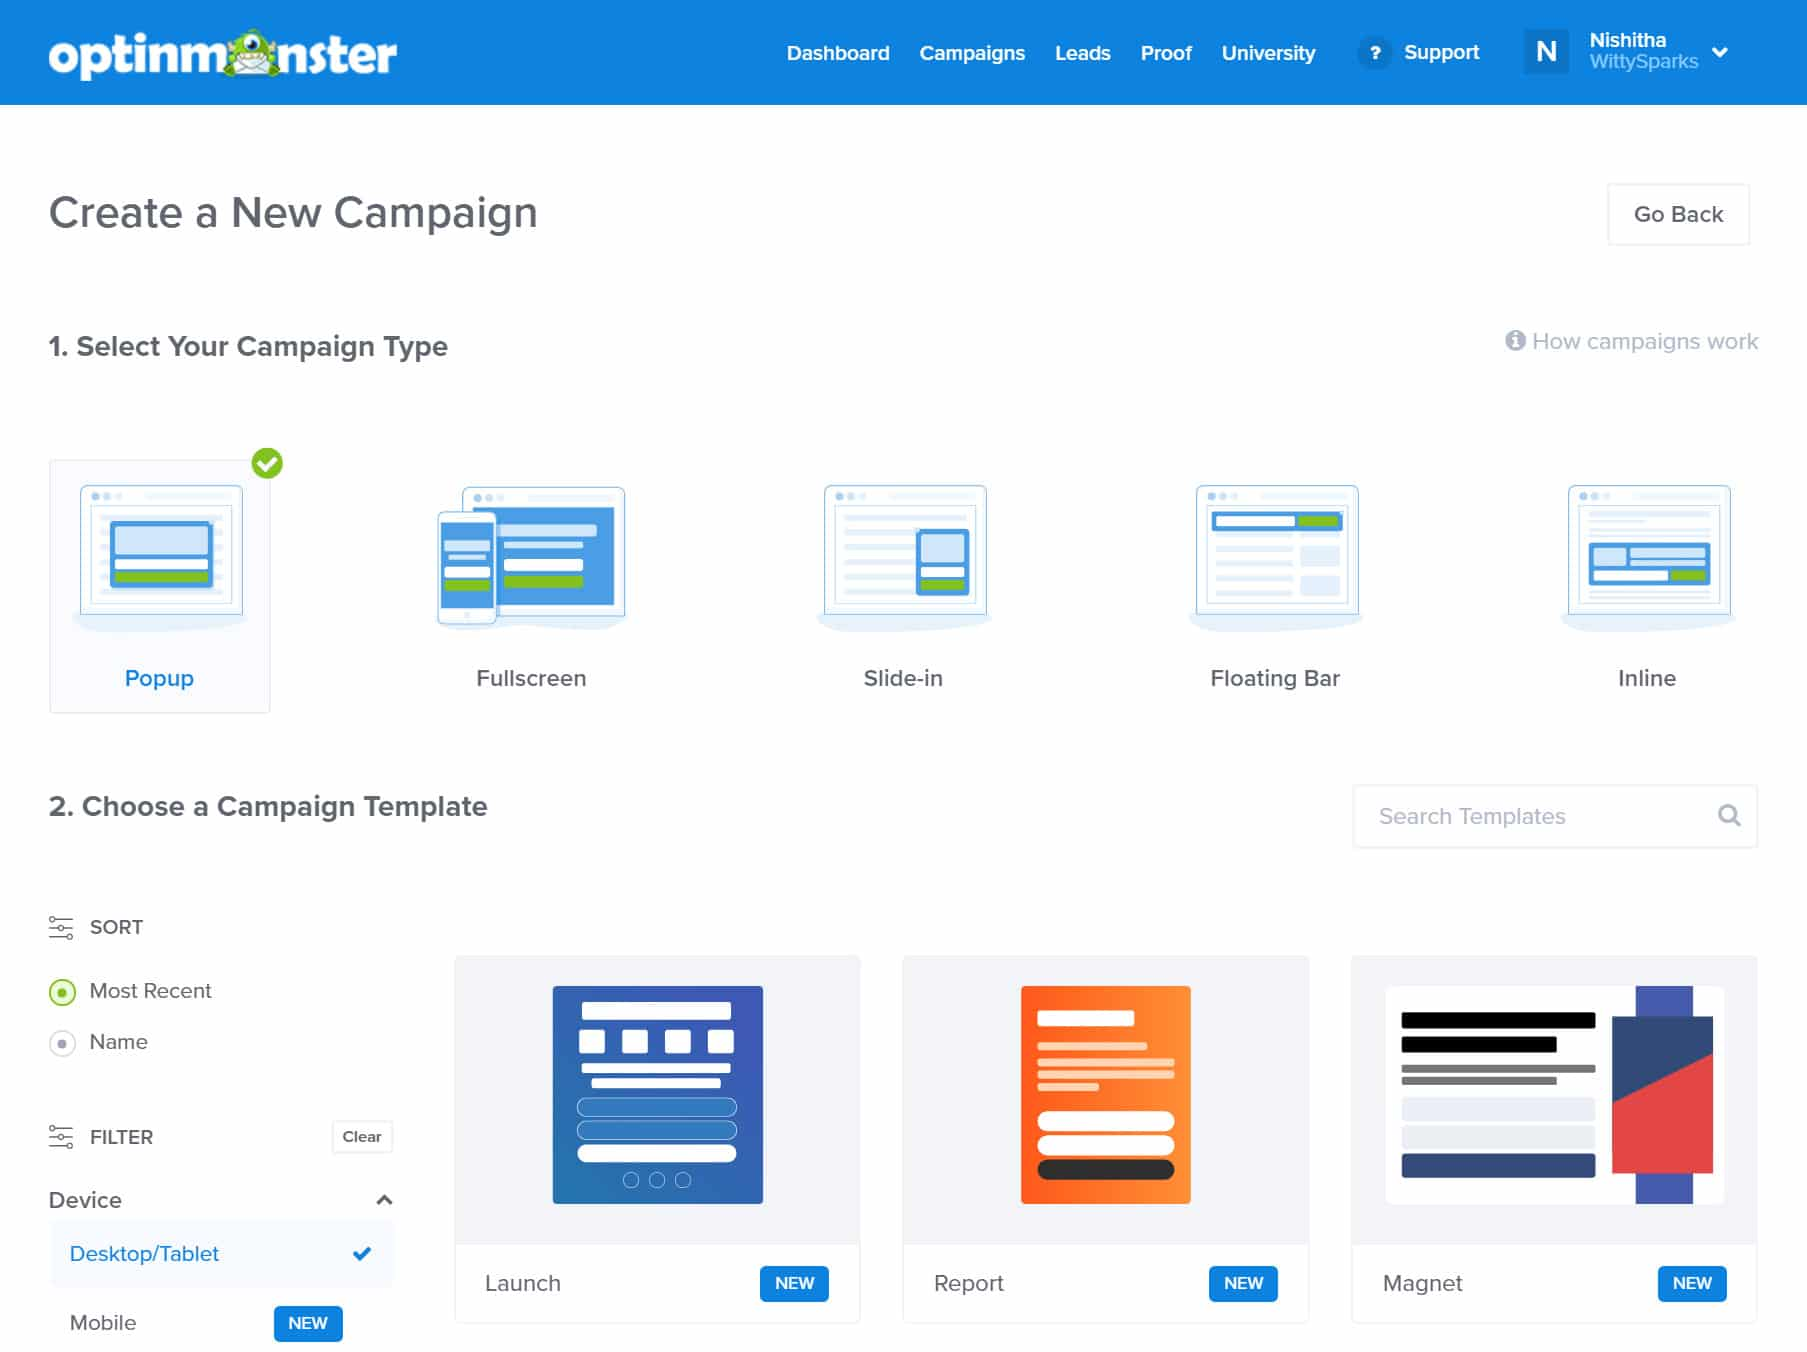 Creating campaigns with Optinmonster